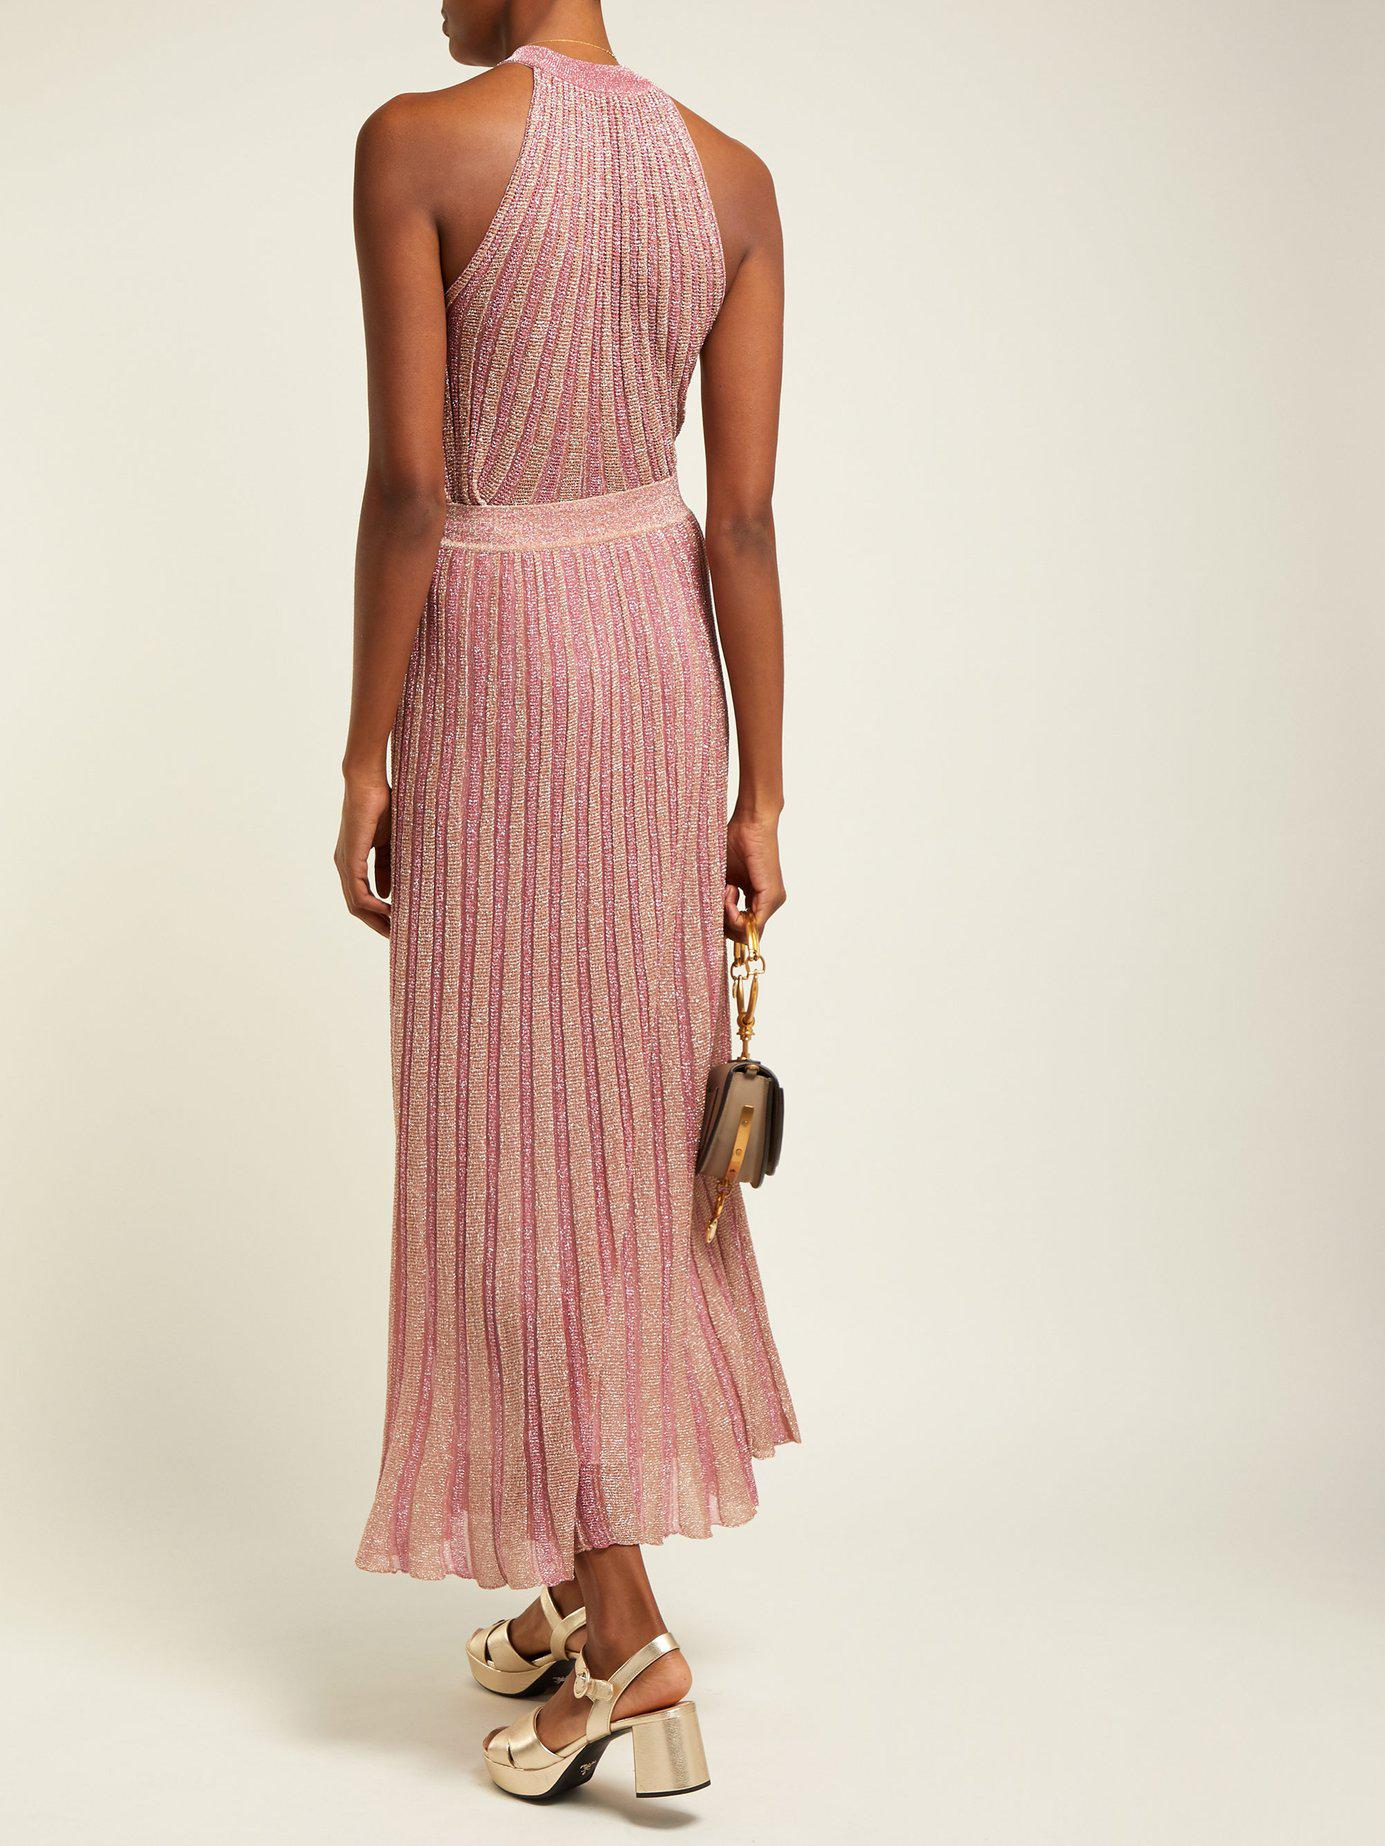 Missoni - Pink Ribbed Knit Lamé Skirt - Lyst. View fullscreen d8ec15631